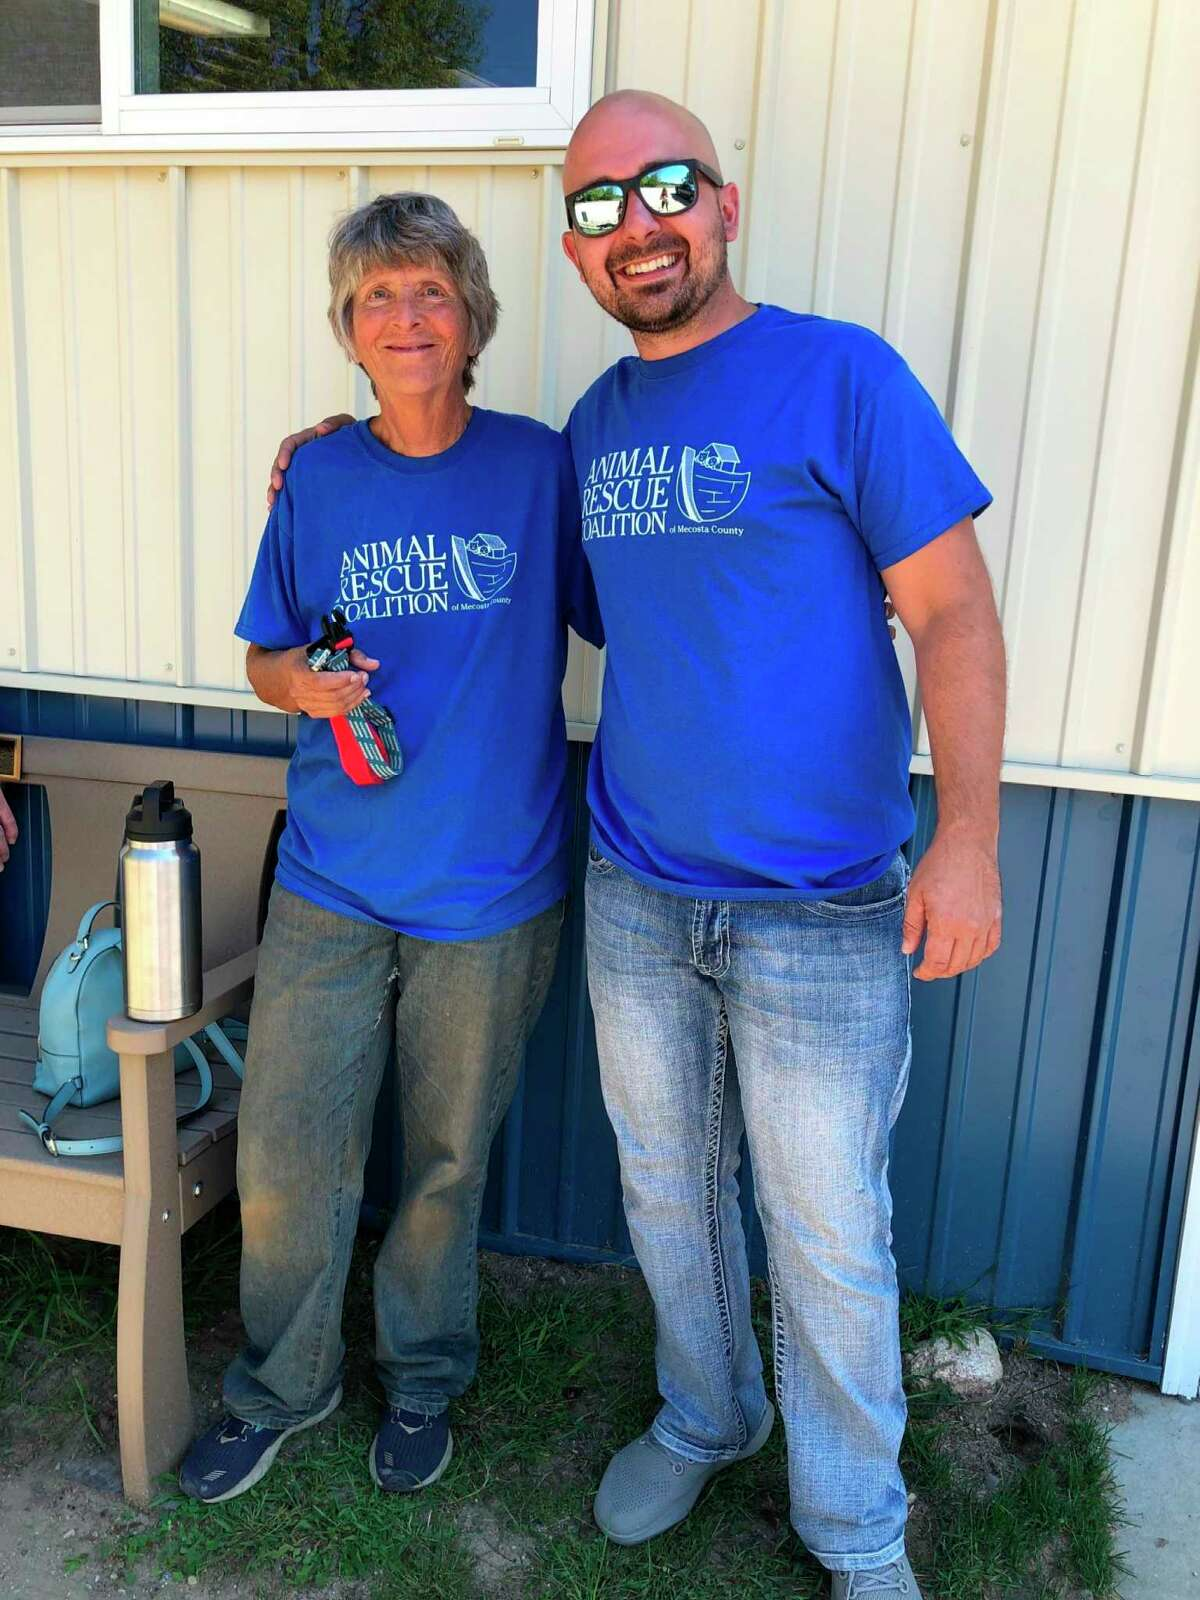 The Animal Rescue Coalition of Mecosta County is celebrating its ninth anniversary and director Cate Arroe (pictured left) has had thousands of successful adoptions including a recentadoption made by Steve Bokor (pictured right). (Courtesy/Cate Arroe)